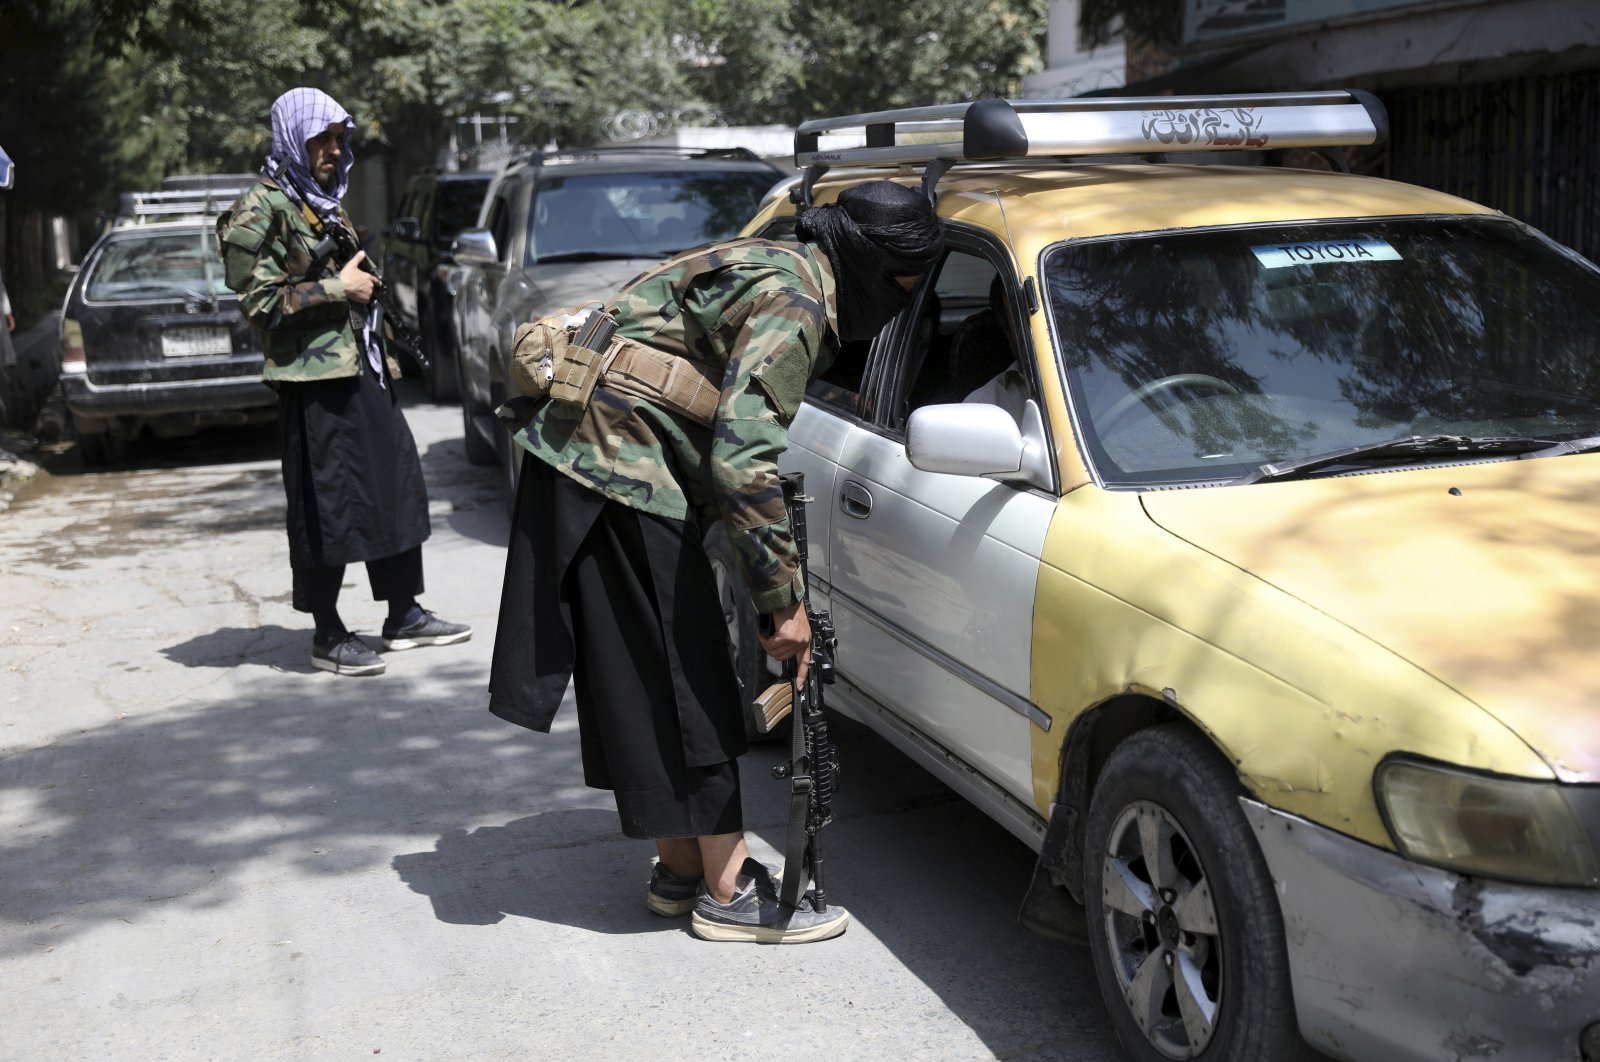 Taliban fighters search a vehicle at a checkpoint on the road in the Wazir Akbar Khan neighborhood in the city of Kabul, Afghanistan, Sunday, Aug. 22, 2021. (AP Photo)